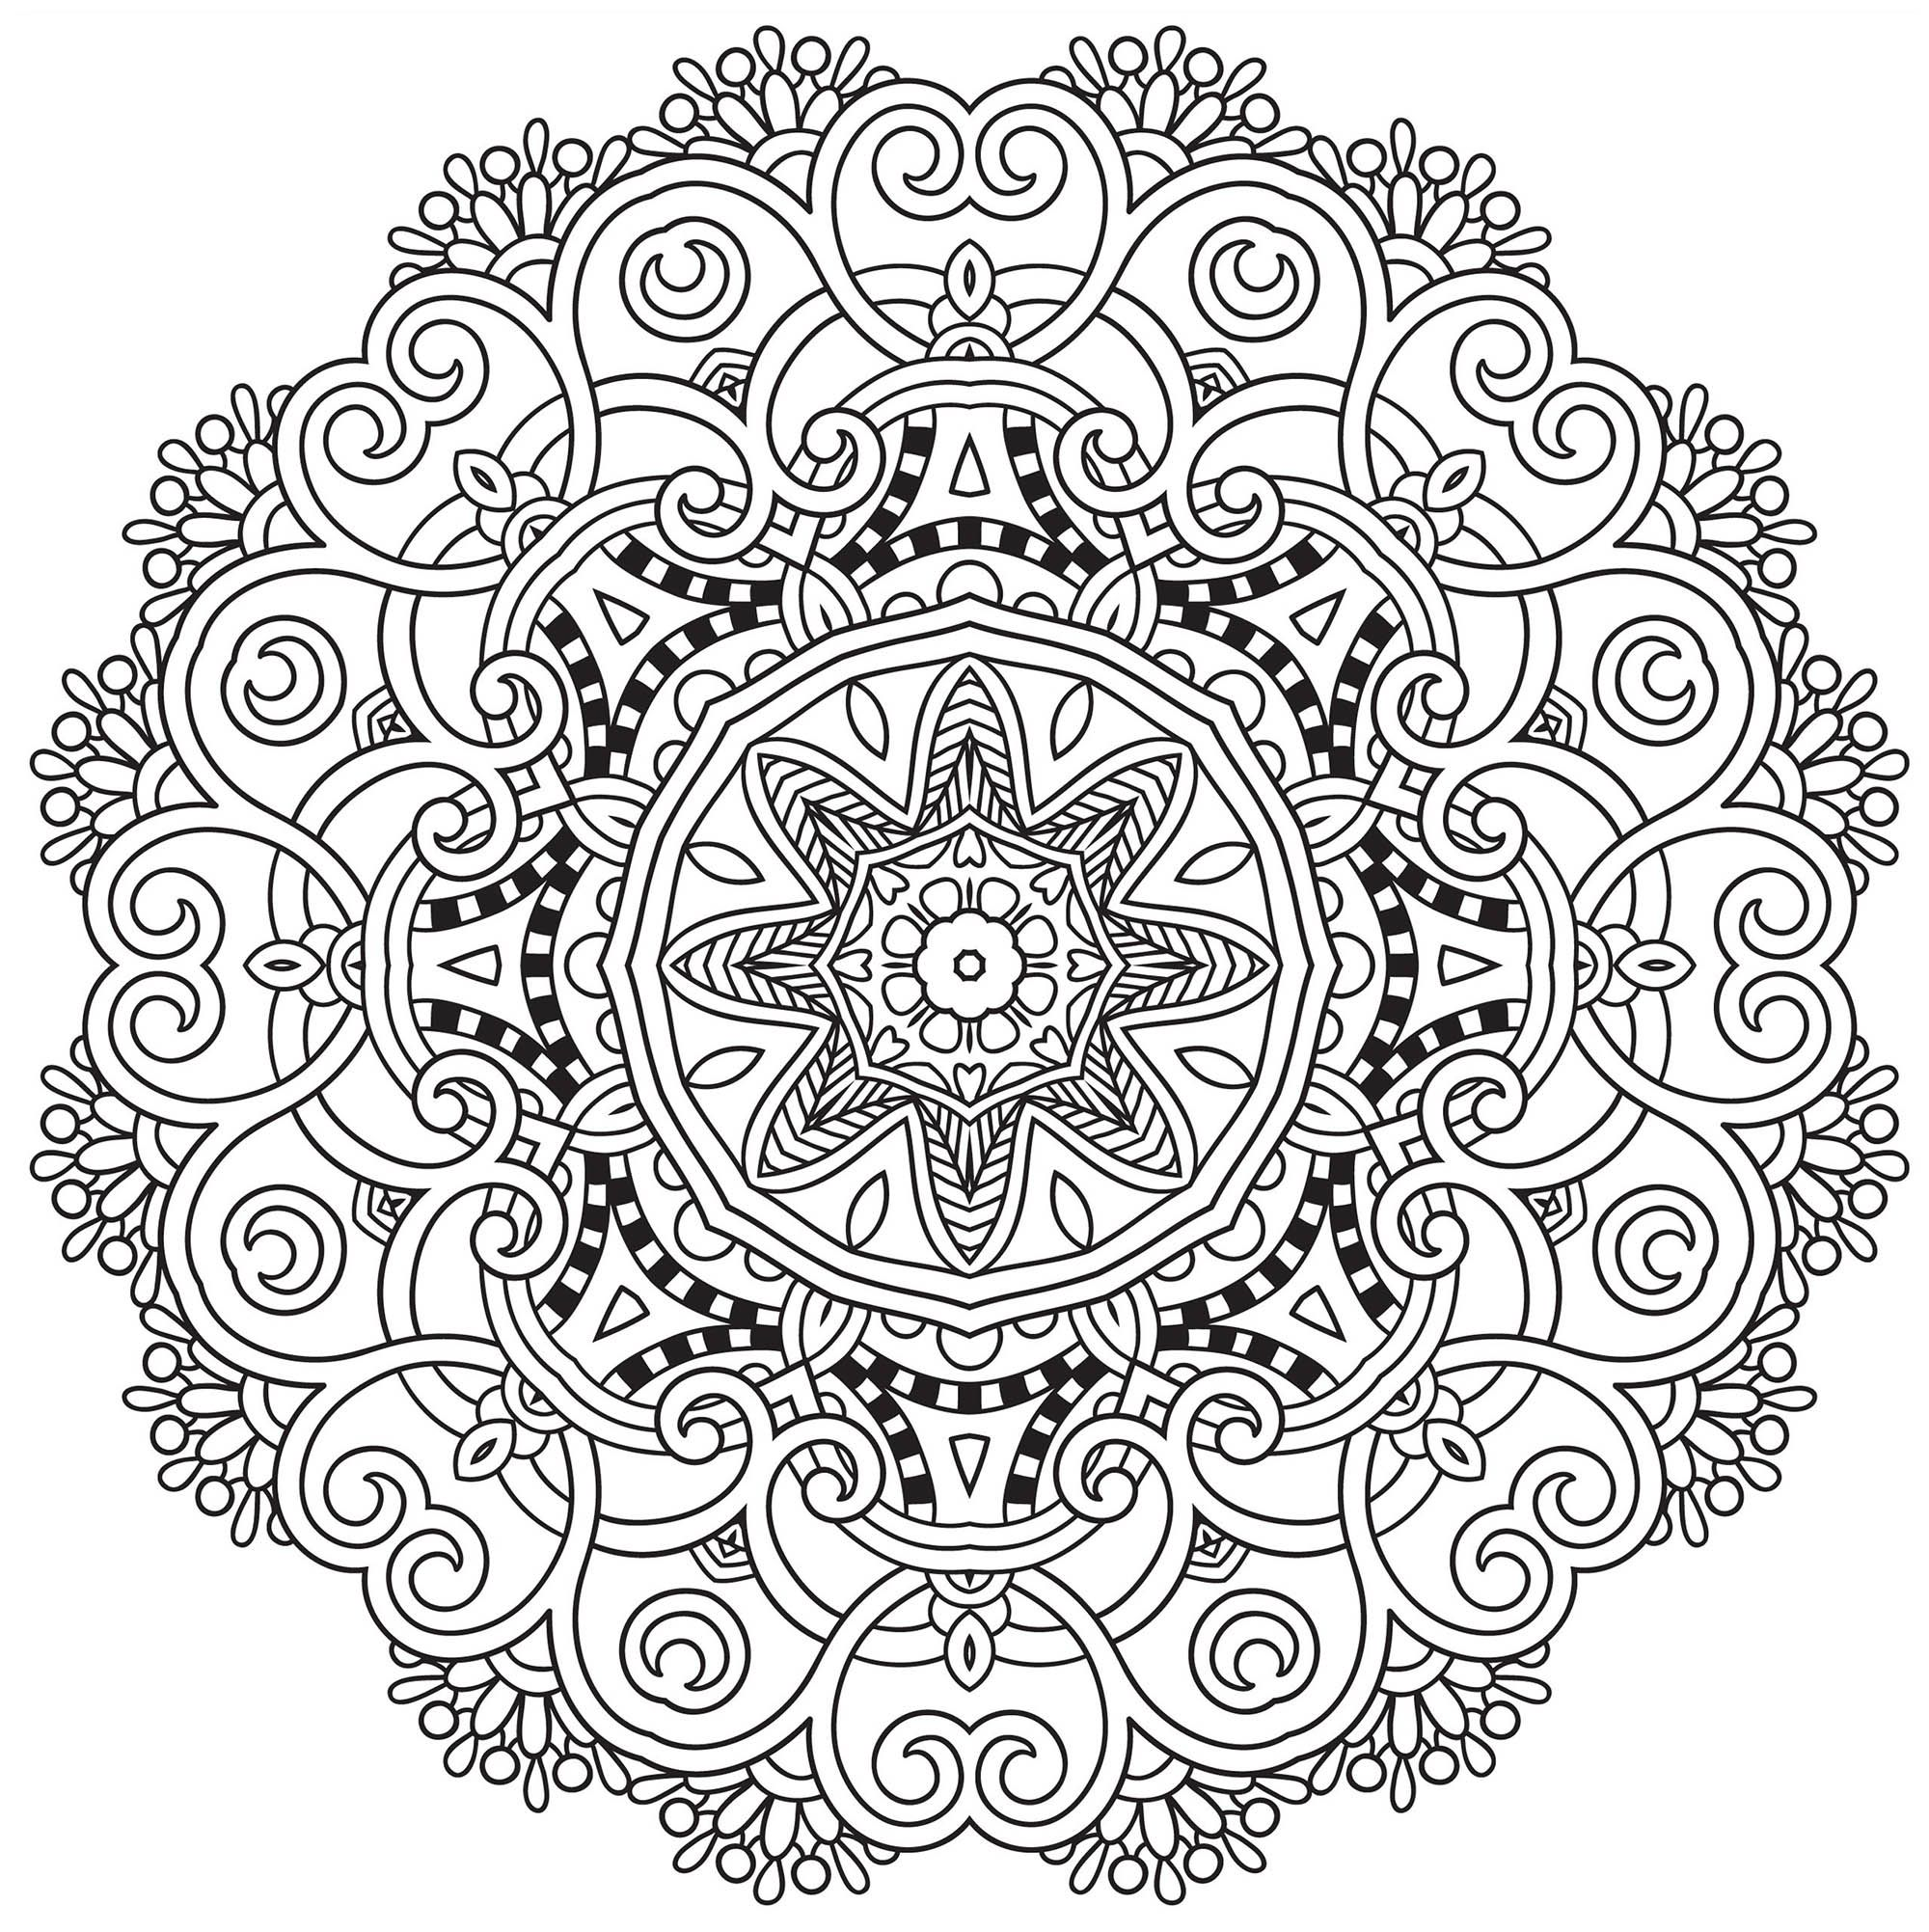 Mandala To Download In Pdf 2from The Gallery Mandalas Designs Coloring Books Mandala Coloring Books Mandala Coloring